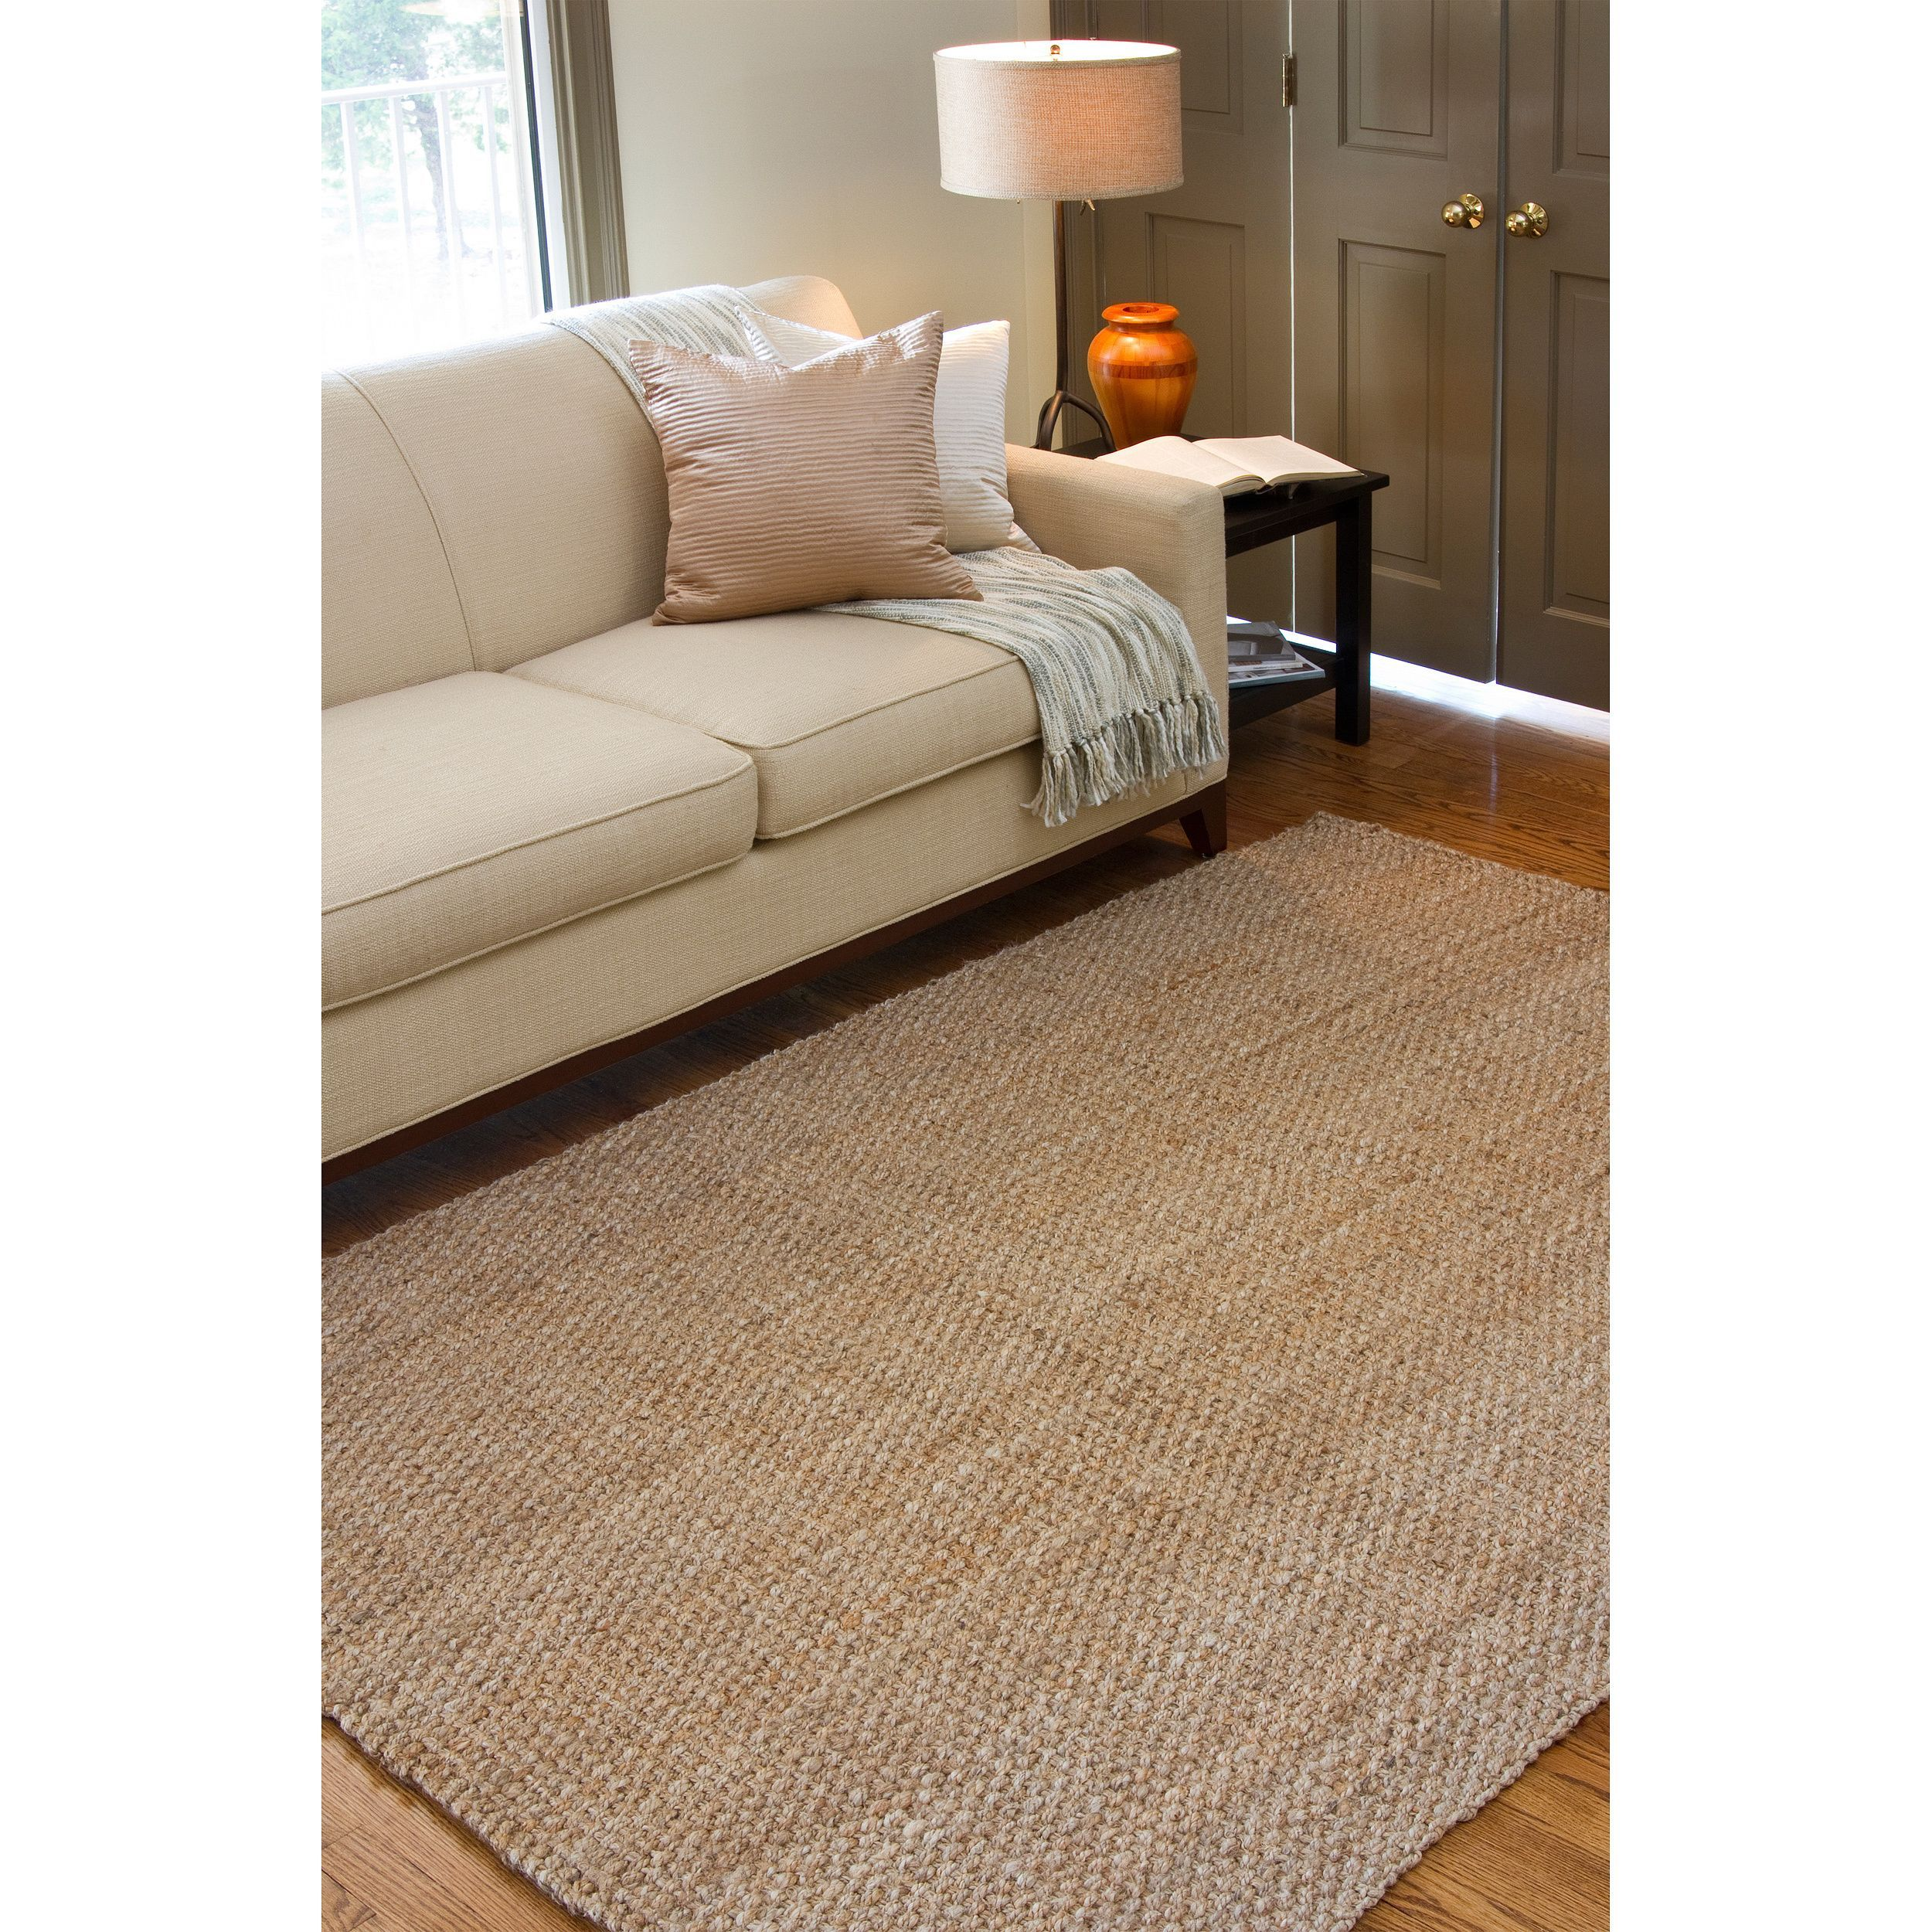 Let The Natural Style Of This Jute Rug Enrich Your Home